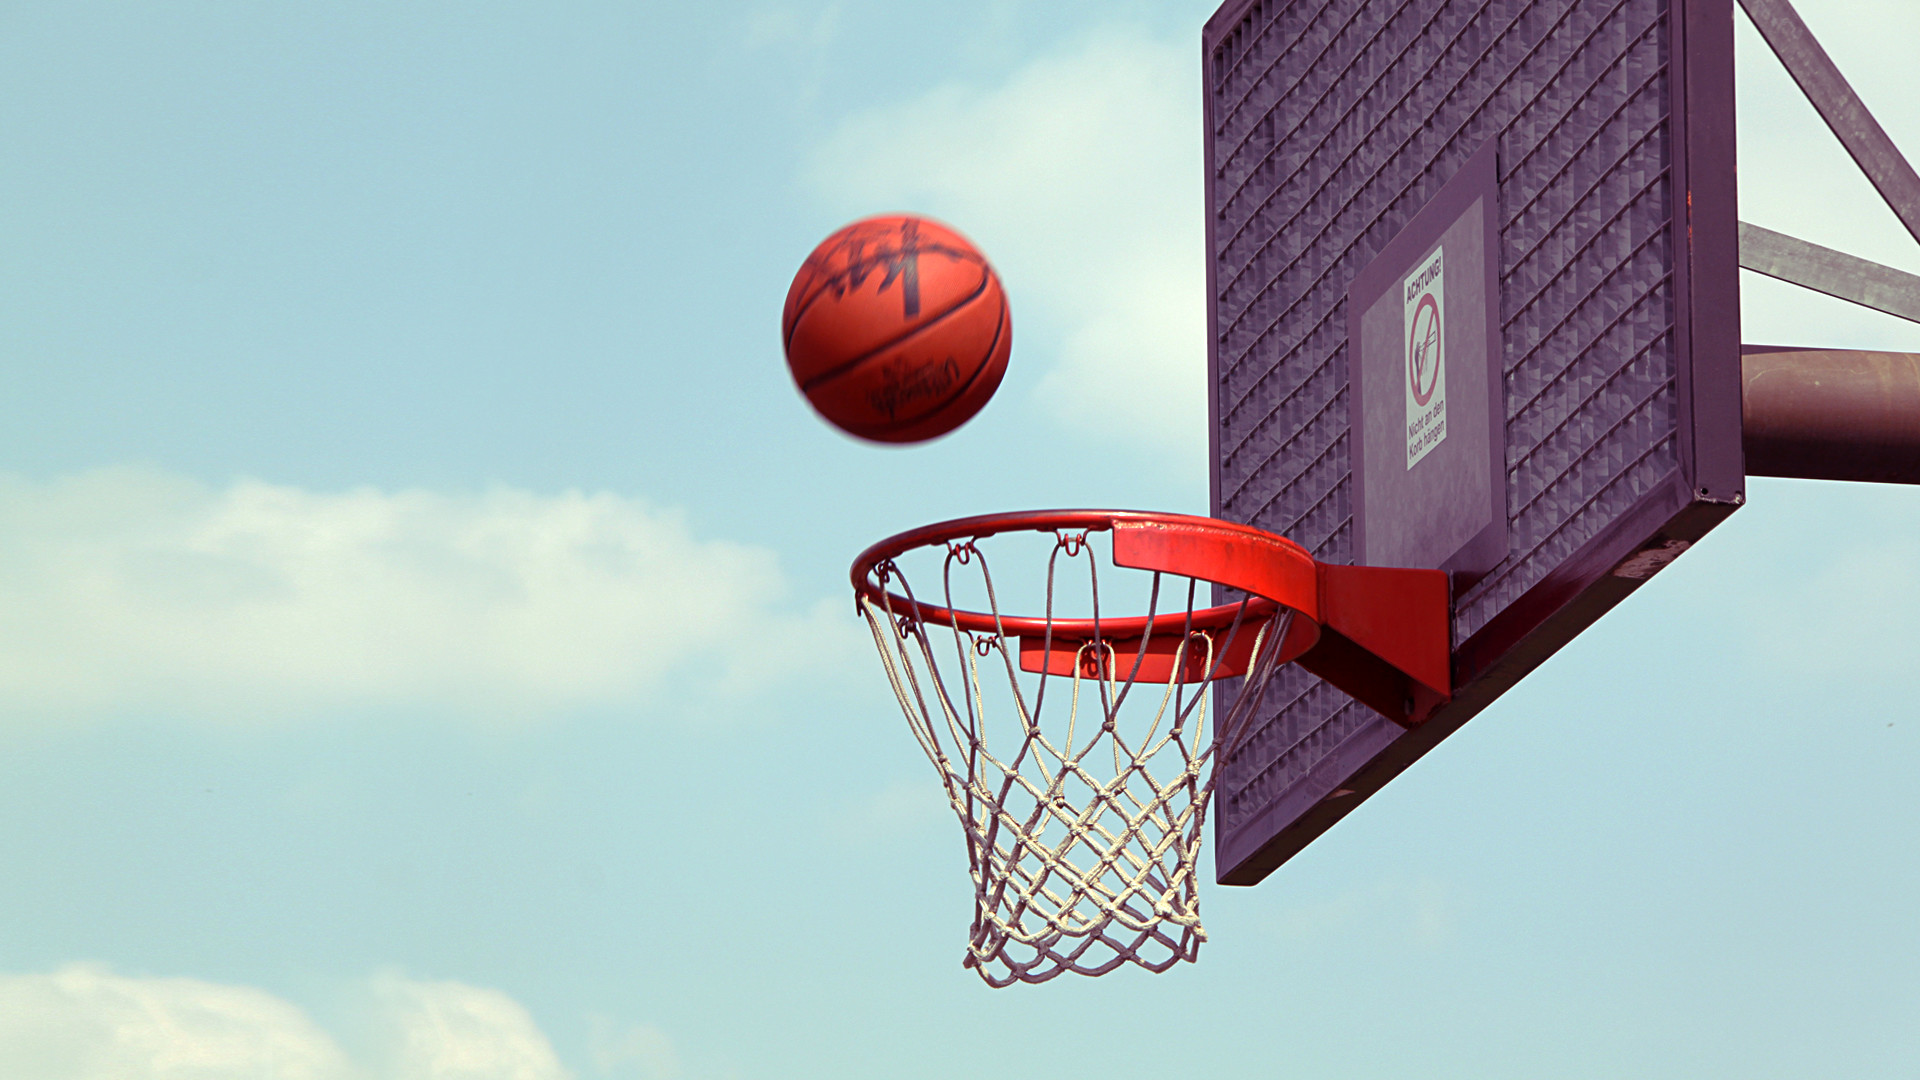 HD Wallpapers Basketball (73+ Images